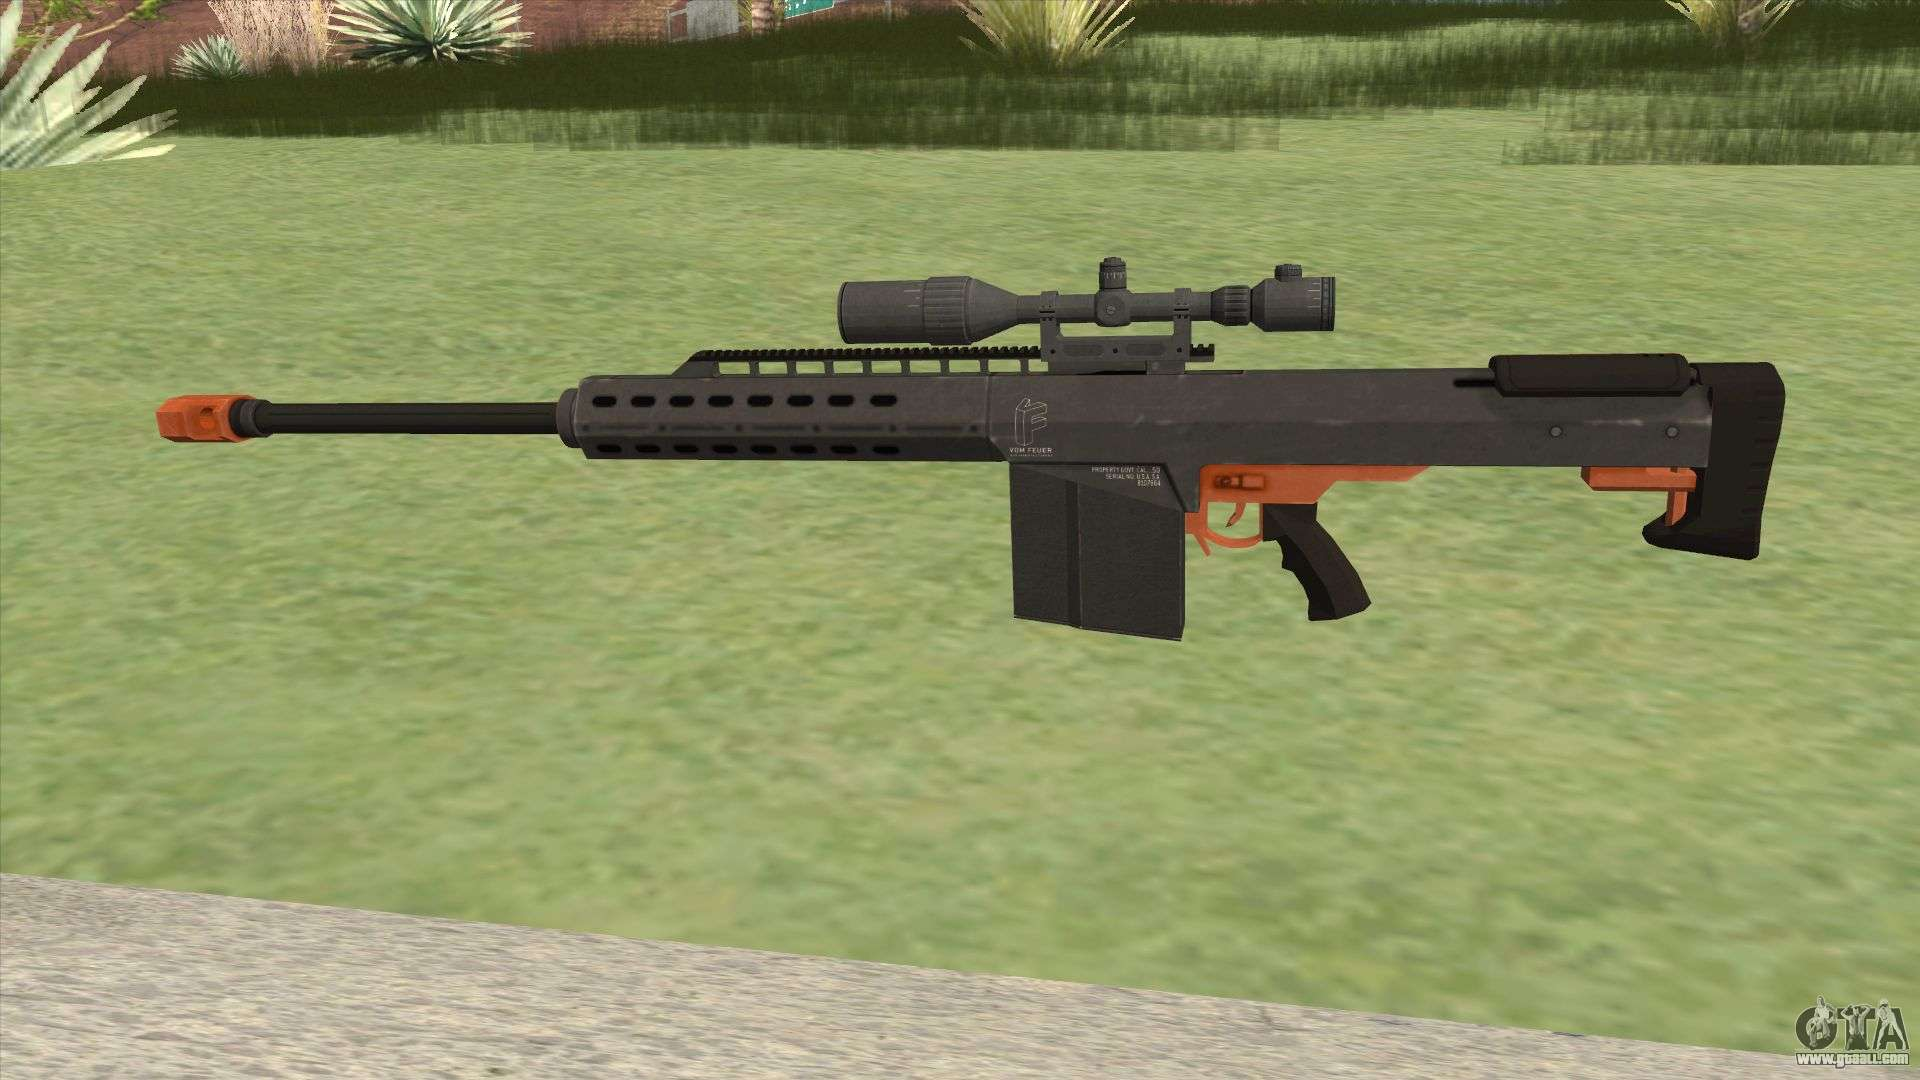 Heavy Sniper Gta V  Orange  V1 For Gta San Andreas